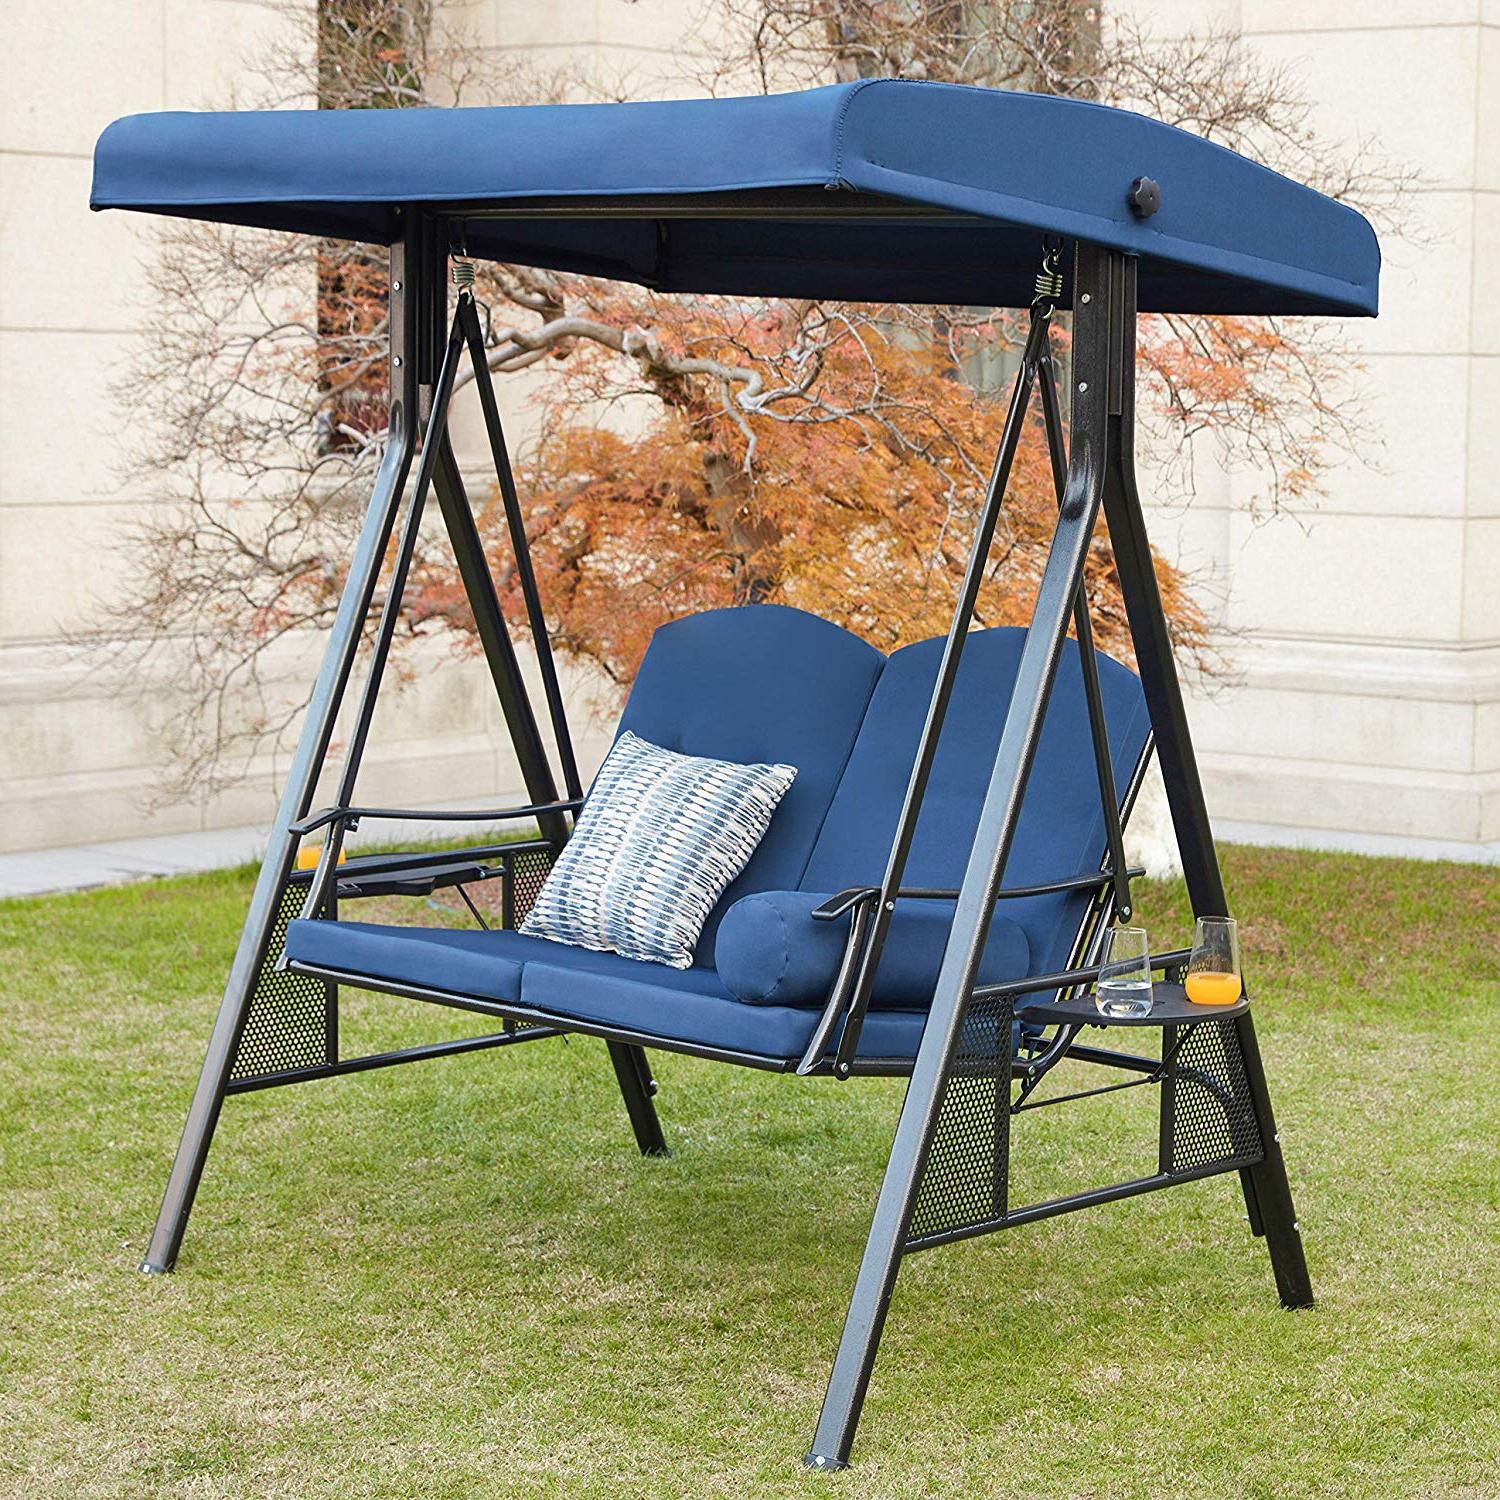 Fashionable Canopy Patio Porch Swings With Pillows And Cup Holders In Lokatse Home 2 Person Canopy Outdoor Swing Chair Patio Hammock Cushions And  Teapoys Loveseat Bench Bed Furniture, 2 Seat Blue (Gallery 26 of 30)